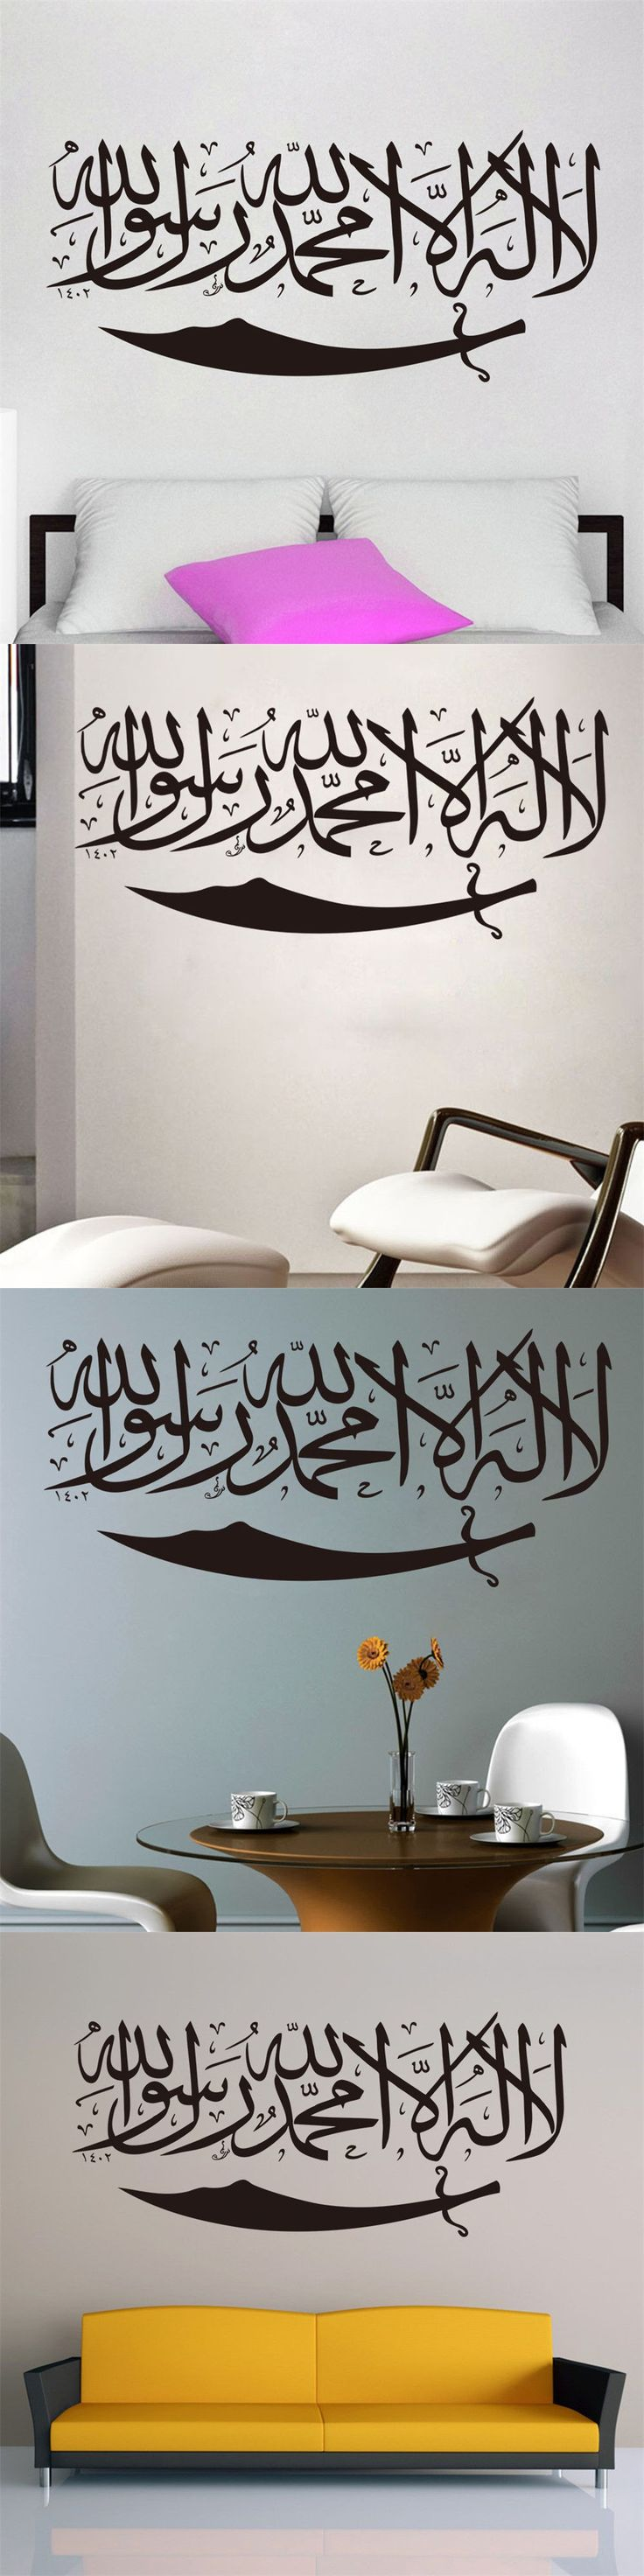 best 25 removable wall murals ideas only on pinterest wall islamic muslim wall art allahu arabic vinyl decal quote pvc removable wall sticker inspiration home decor